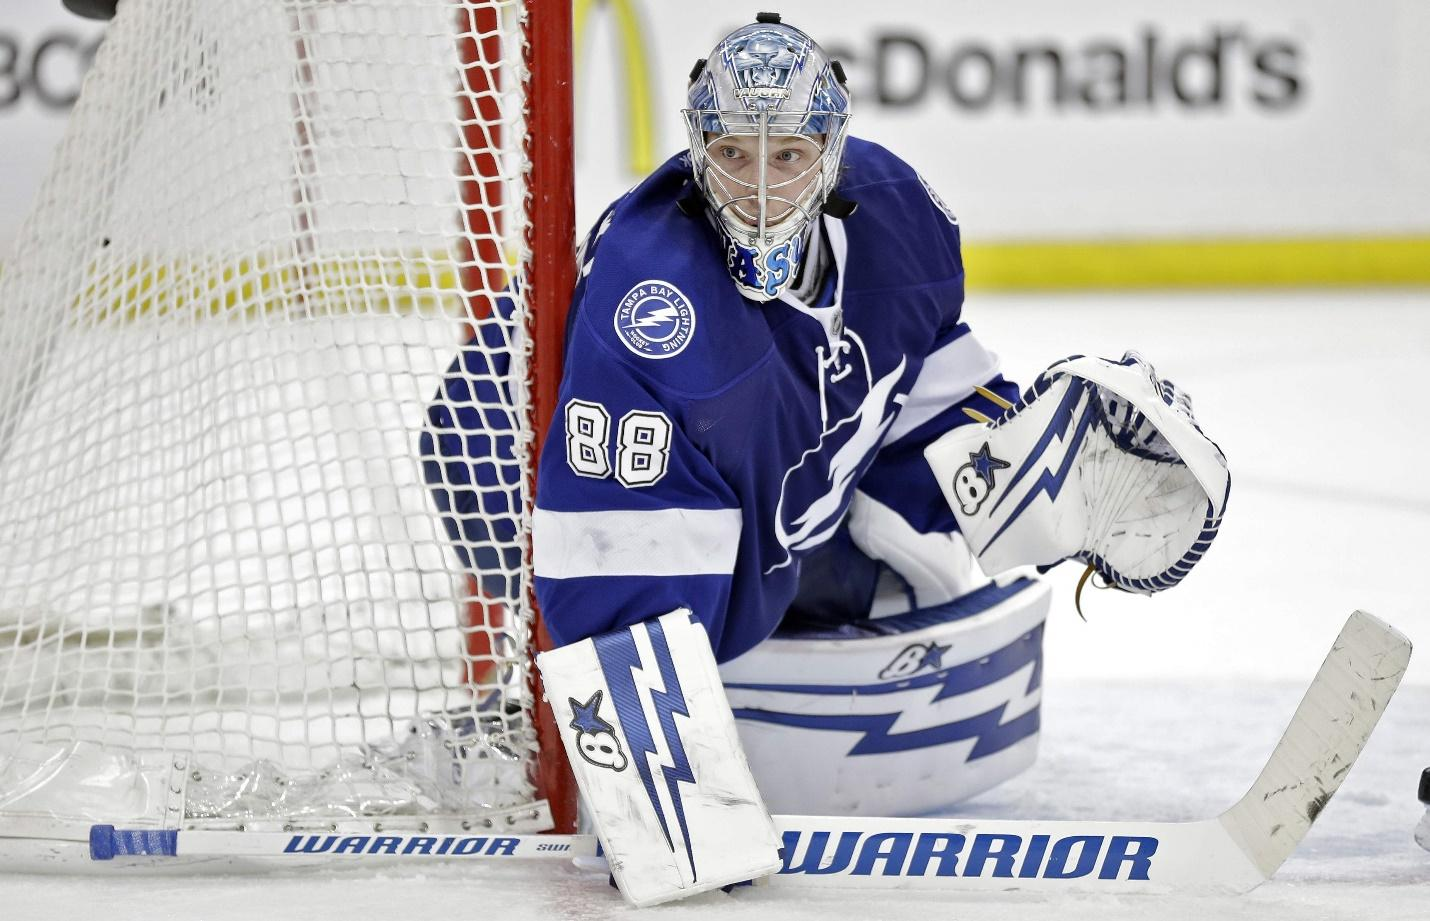 Since Ben Bishop has been traded to the LA Kings, Andrei Vasilevsky now is the starting goalie for the Tampa Bay Lightning.